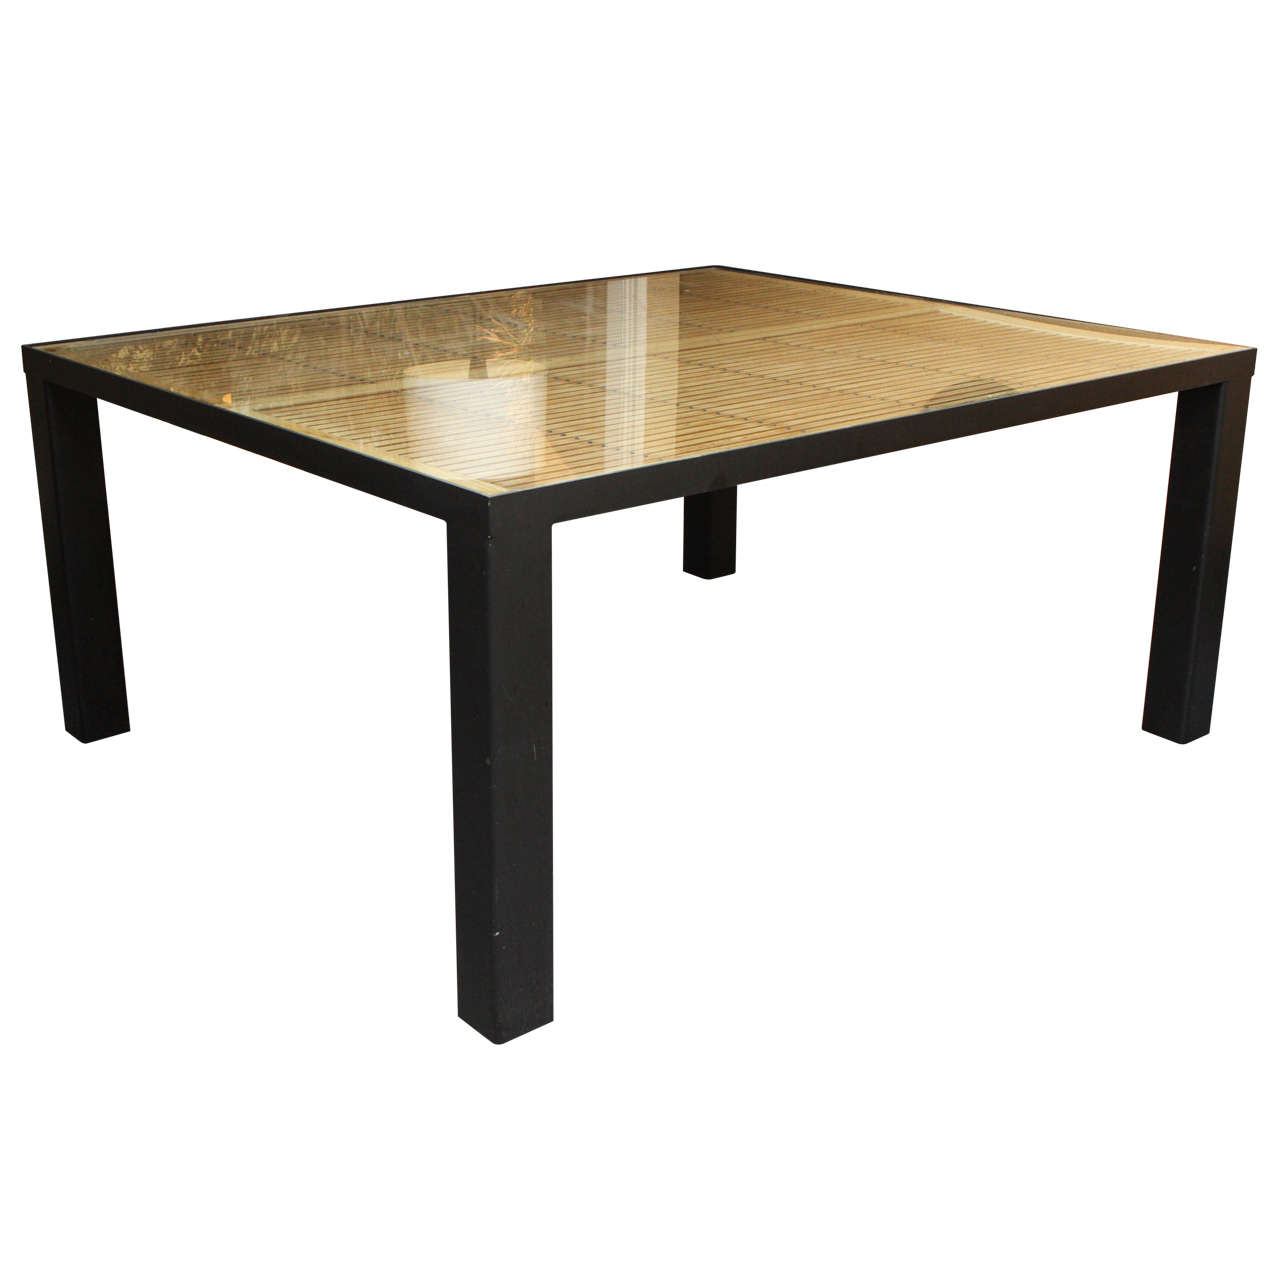 Large Outdoor Dining Table : X from hwiki.us size 1280 x 1280 jpeg 54kB